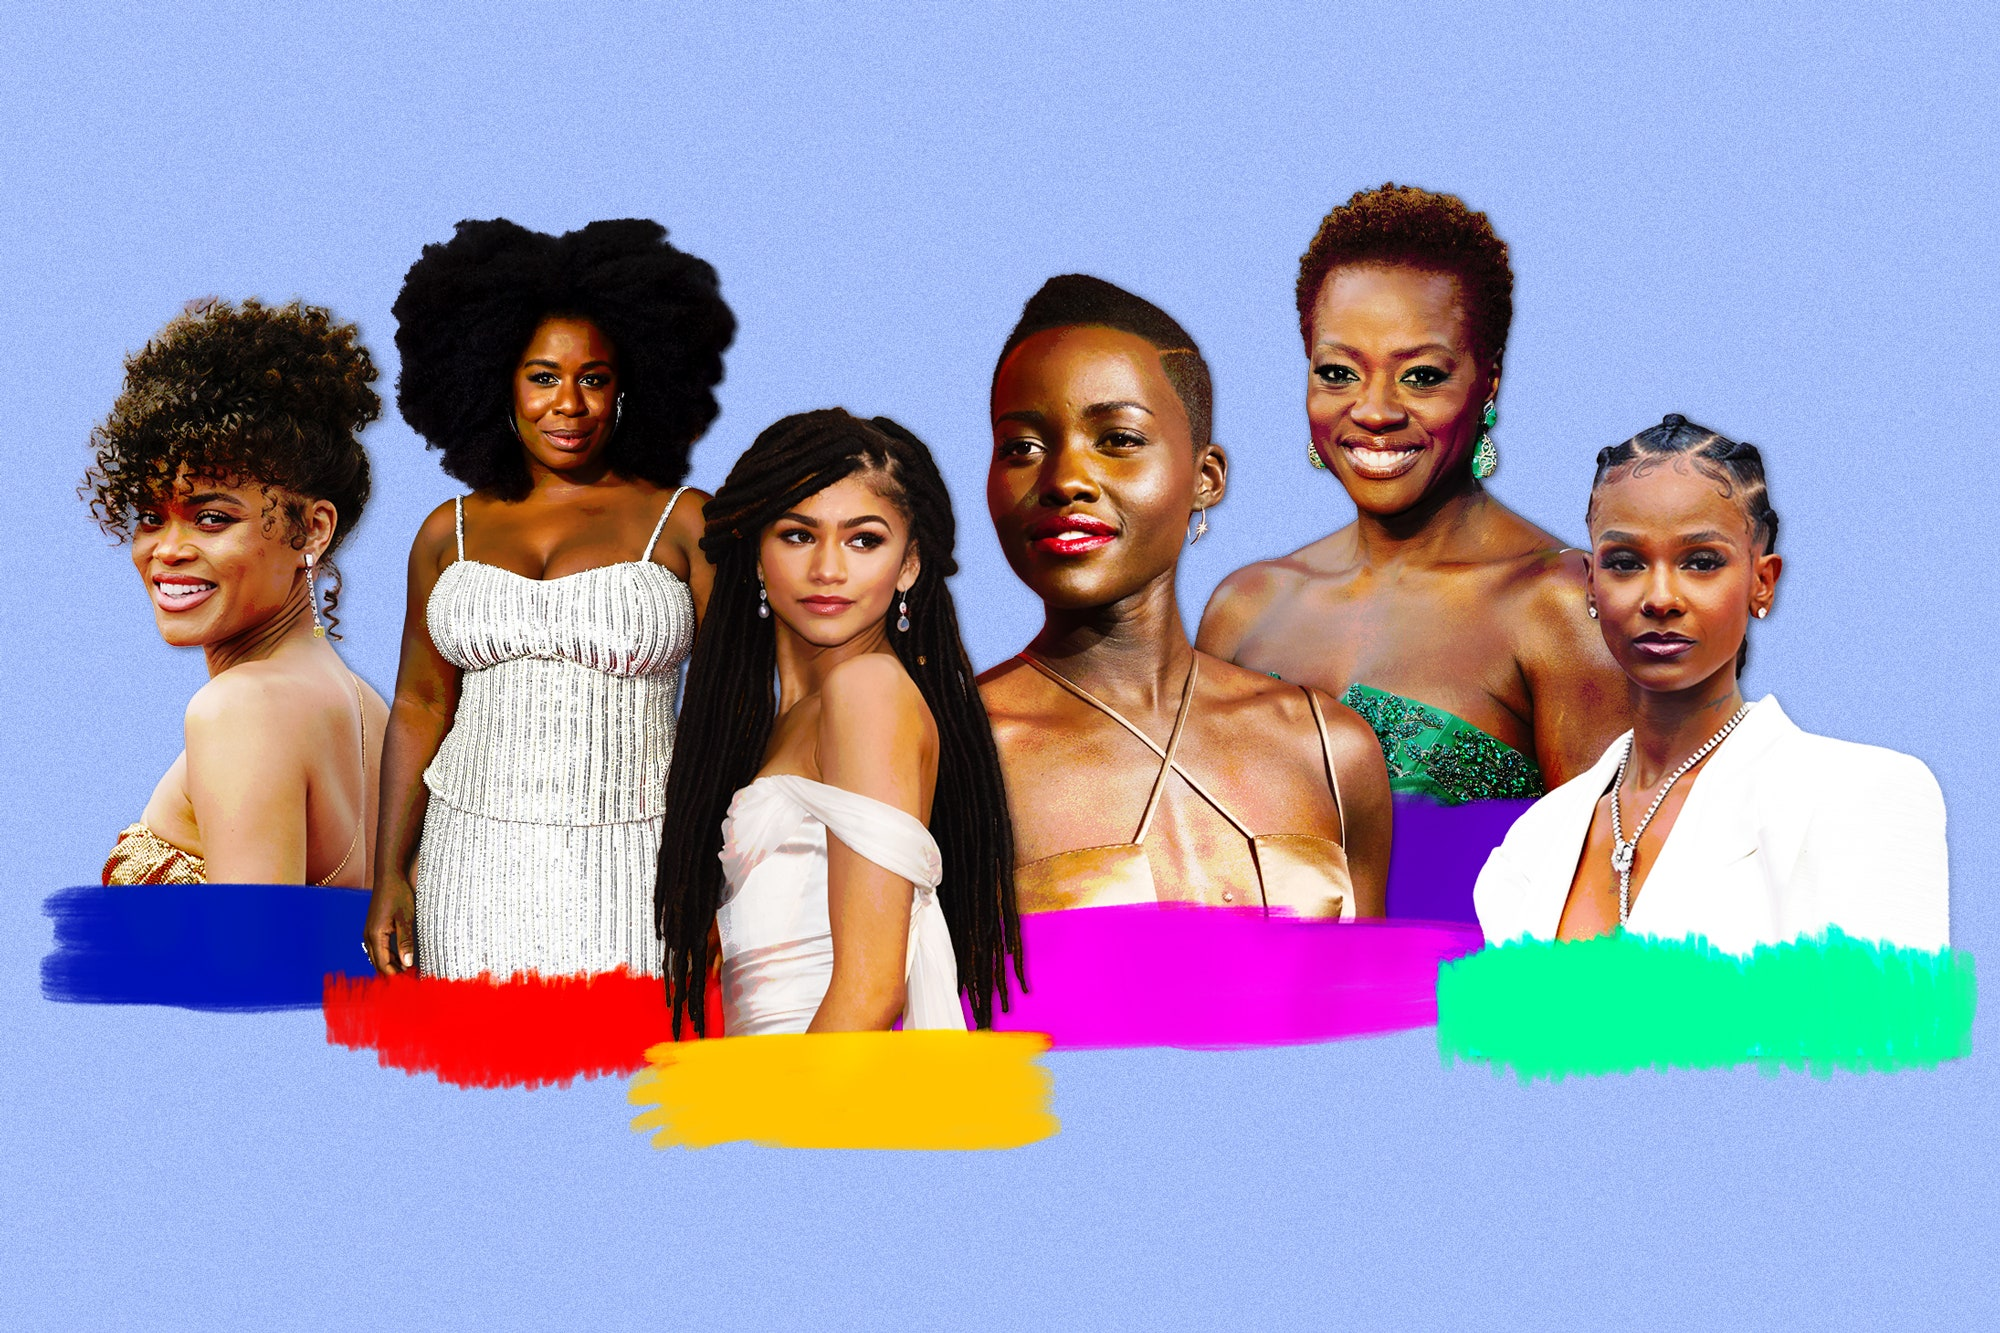 Black Hair, Red Carpet: How the Push for Representation Is Reshaping Beauty in Hollywood and Beyond